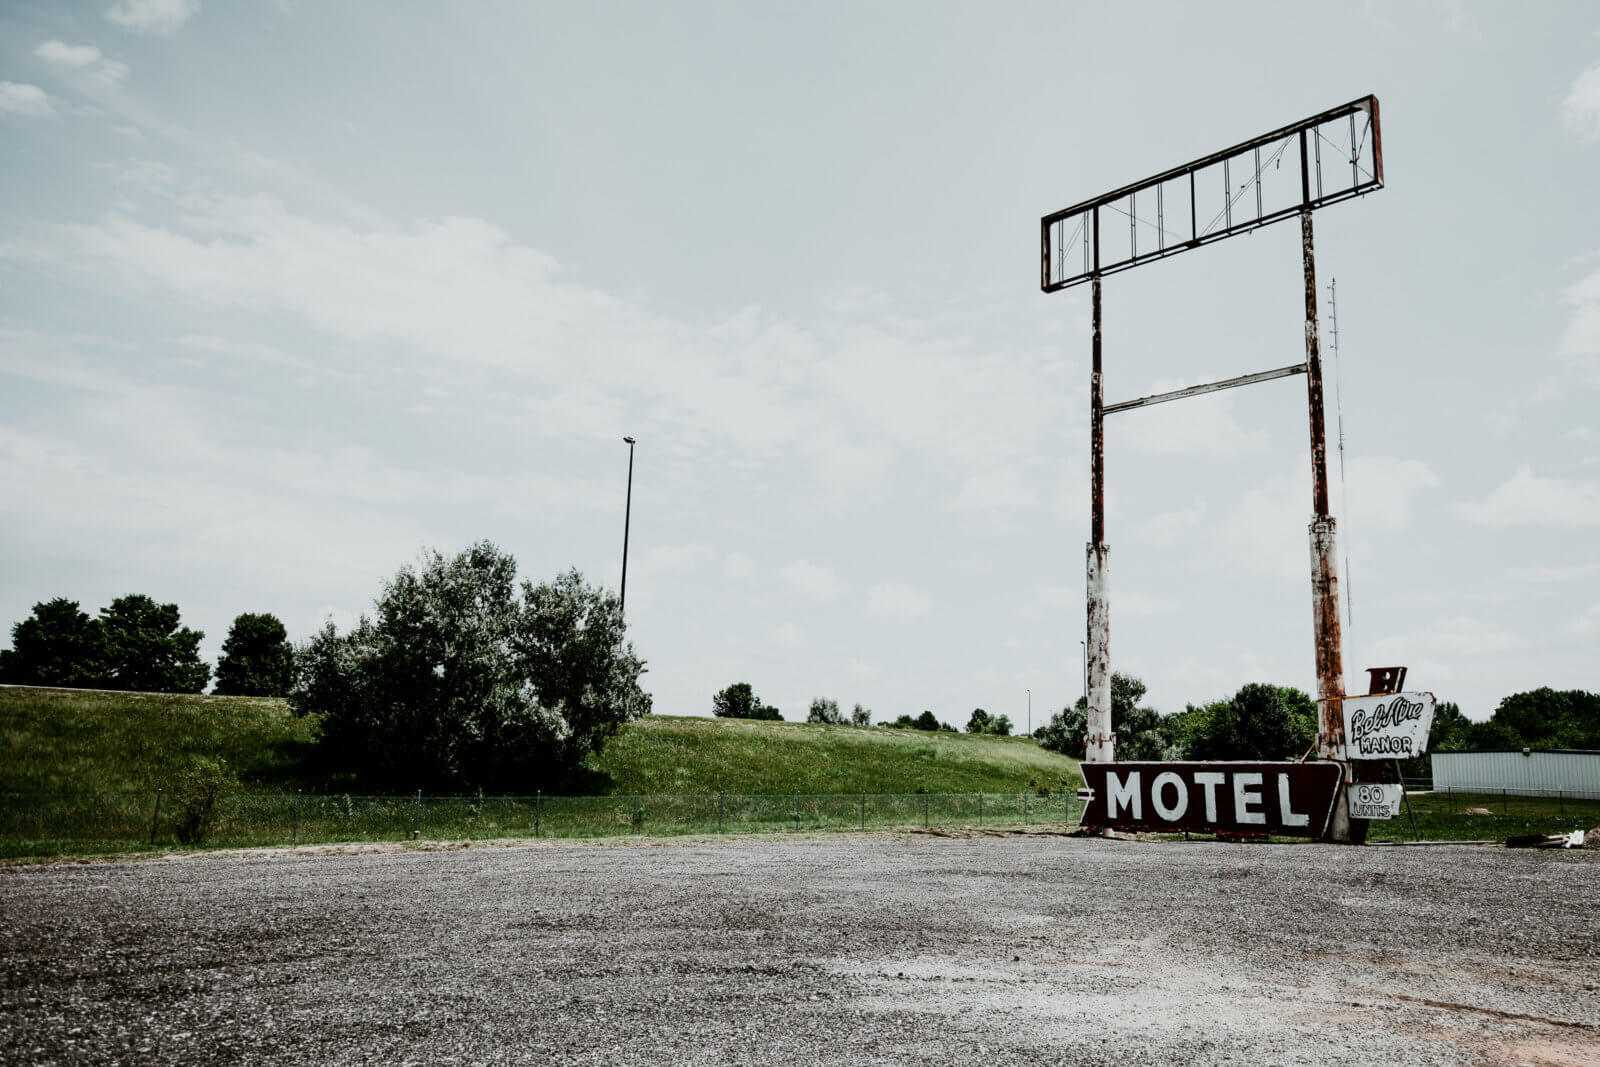 alte motel schilder in illinois